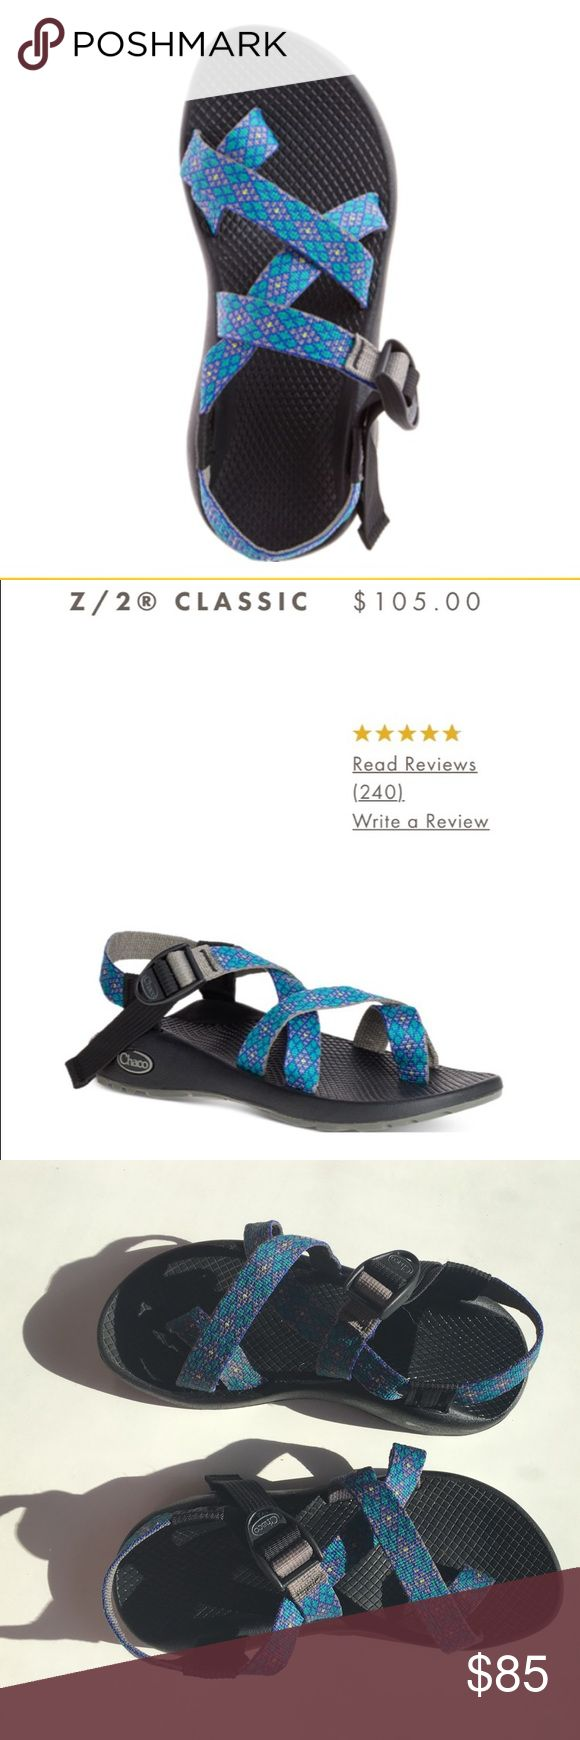 Women's Chaco sandals Like new Chaco sandals! I got these as a gift and they do not fit! They are still on the Chaco website listed for $105❗Perfect summer shoes ☀️ Important : They are adjusted to fit my feet, so you may have to adjust the straps, which can be confusing at first but just go to their website and watch their videos! Do not come with original box‼️  ❌ NO TRADE ❌ NO PAYPAL Chacos Shoes Sandals